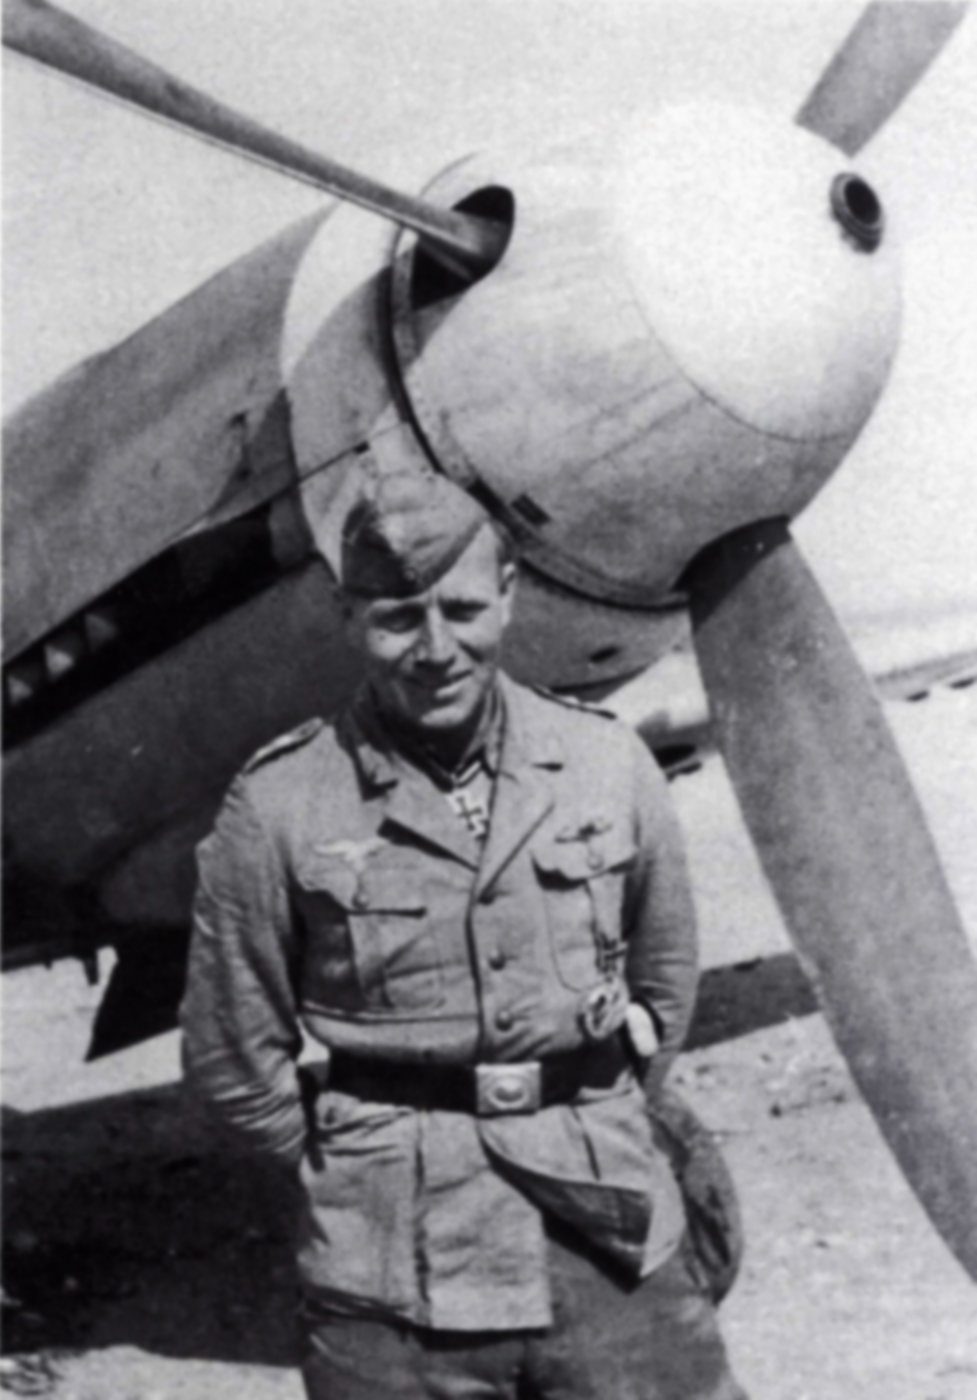 Aircrew Luftwaffe JG27 ace Otto Schulz North Africa 1942 02